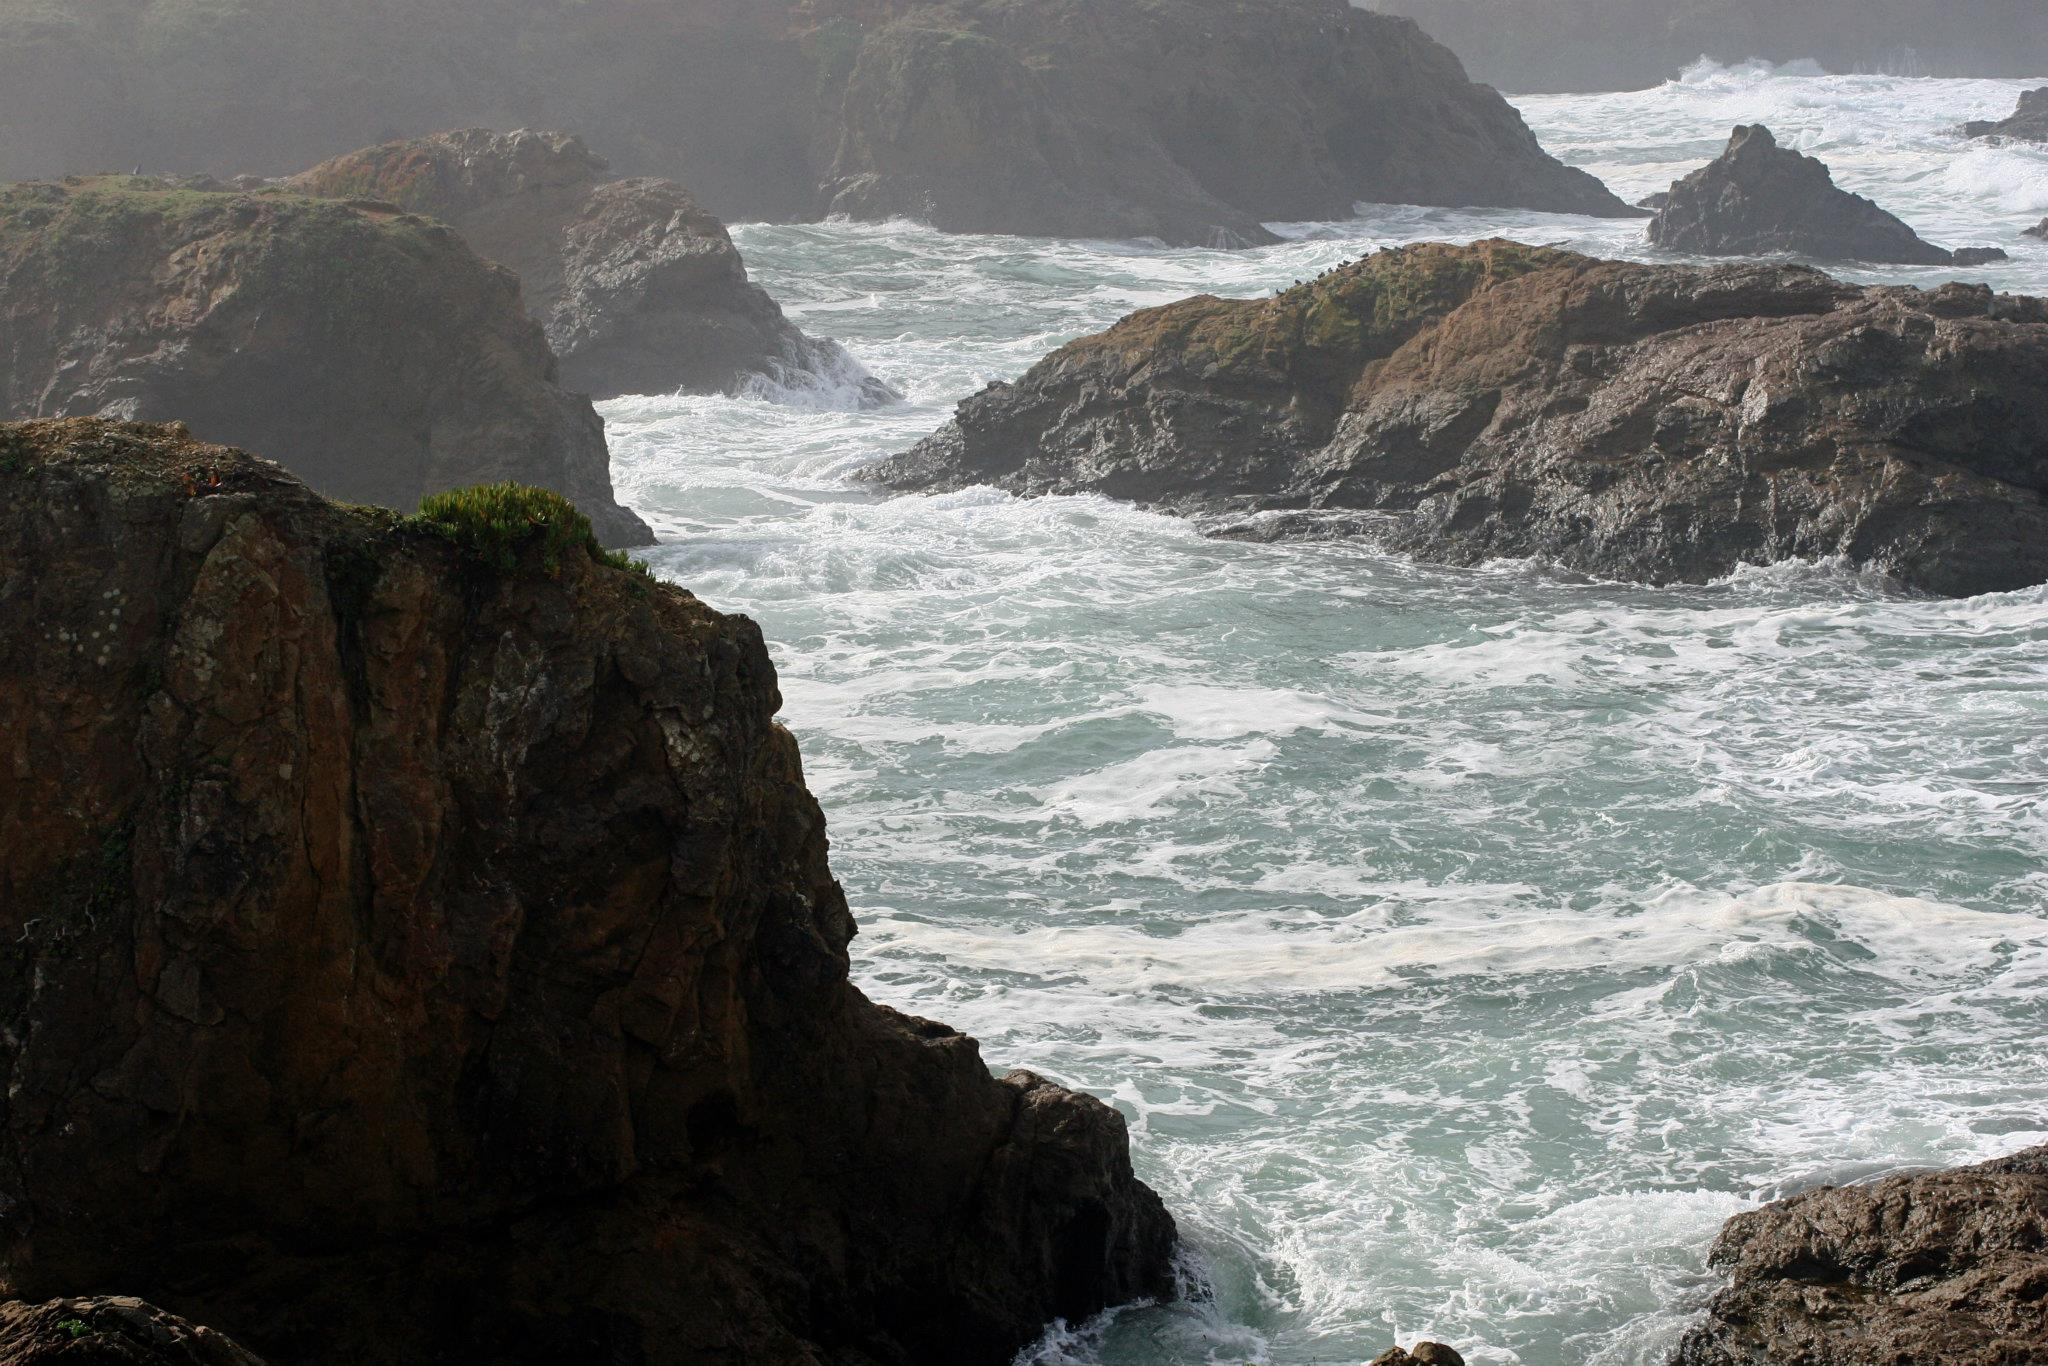 Fort Bragg, Mendocino and Driving the Pacific Coast ...